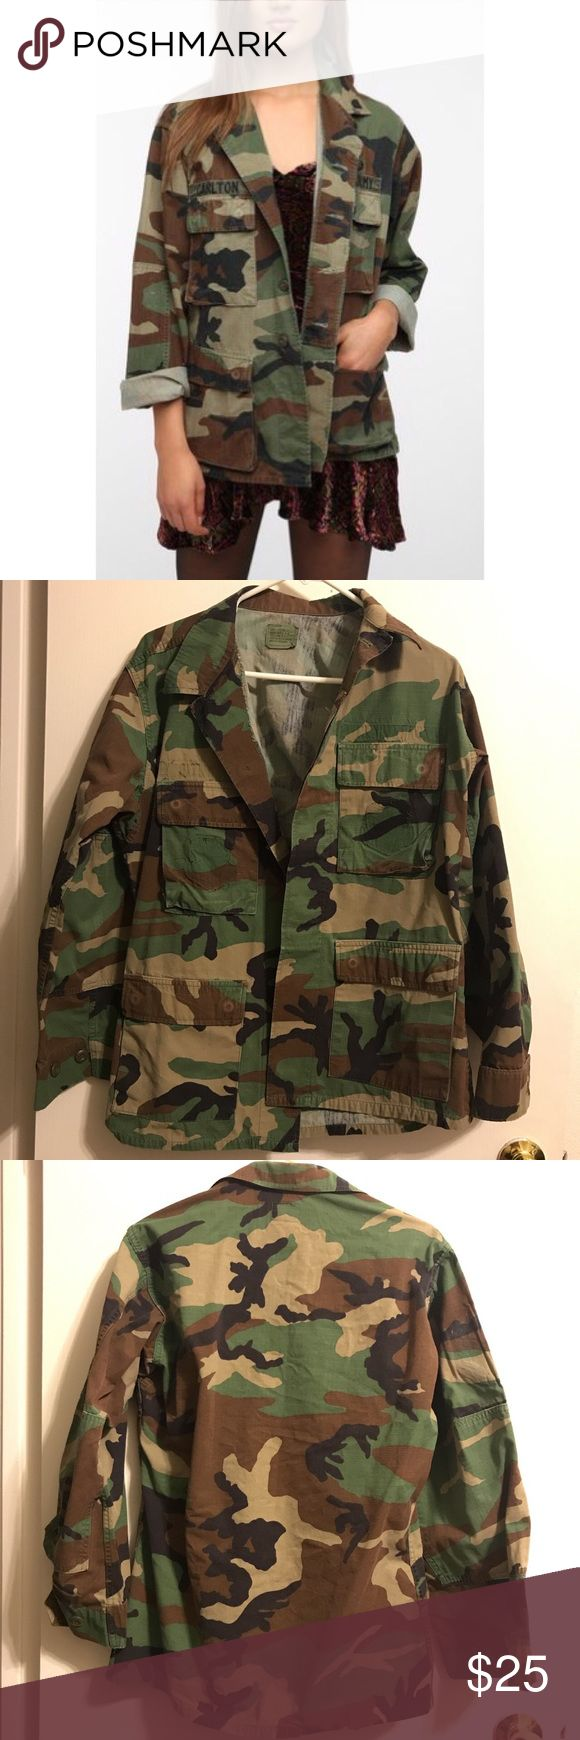 Urban Outfitters urban renewal Army surplus jacket From urban Outfitters! States a size small Urban Outfitters Jackets & Coats